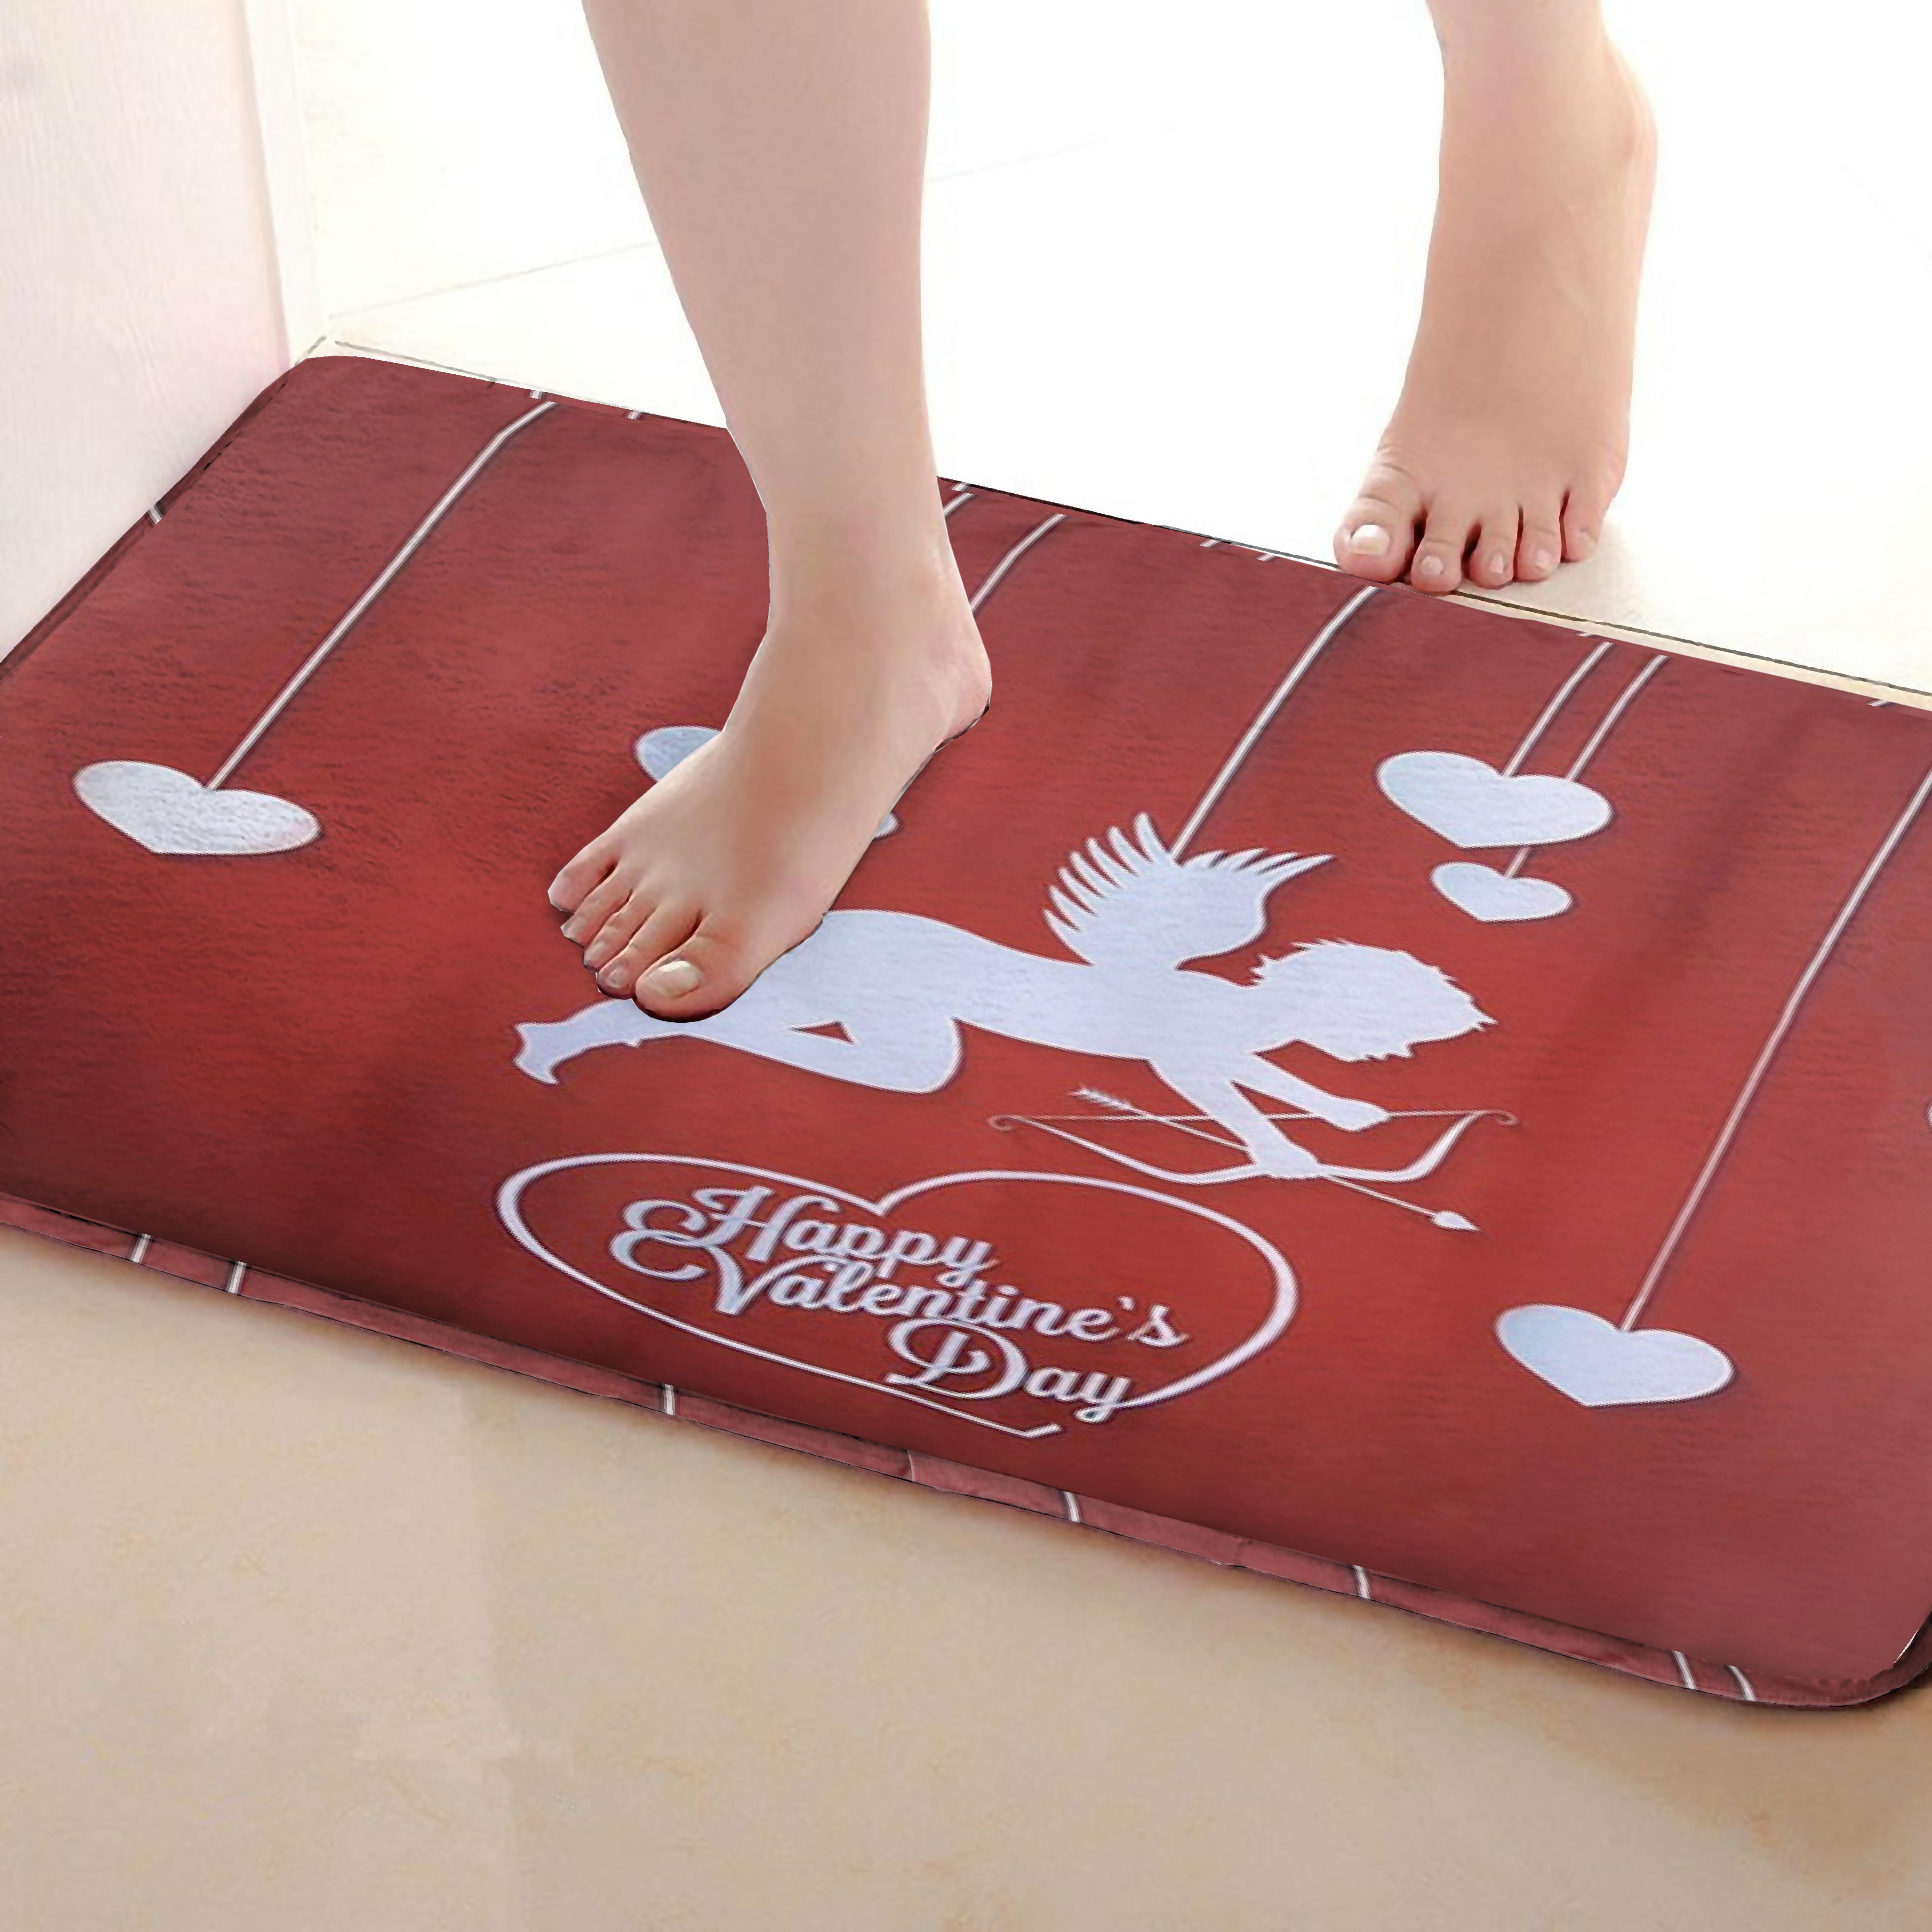 Cupid Style Bathroom Mat,Funny Anti Skid Bath Mat,Shower Curtains Accessories,Matching Your Shower Curtain